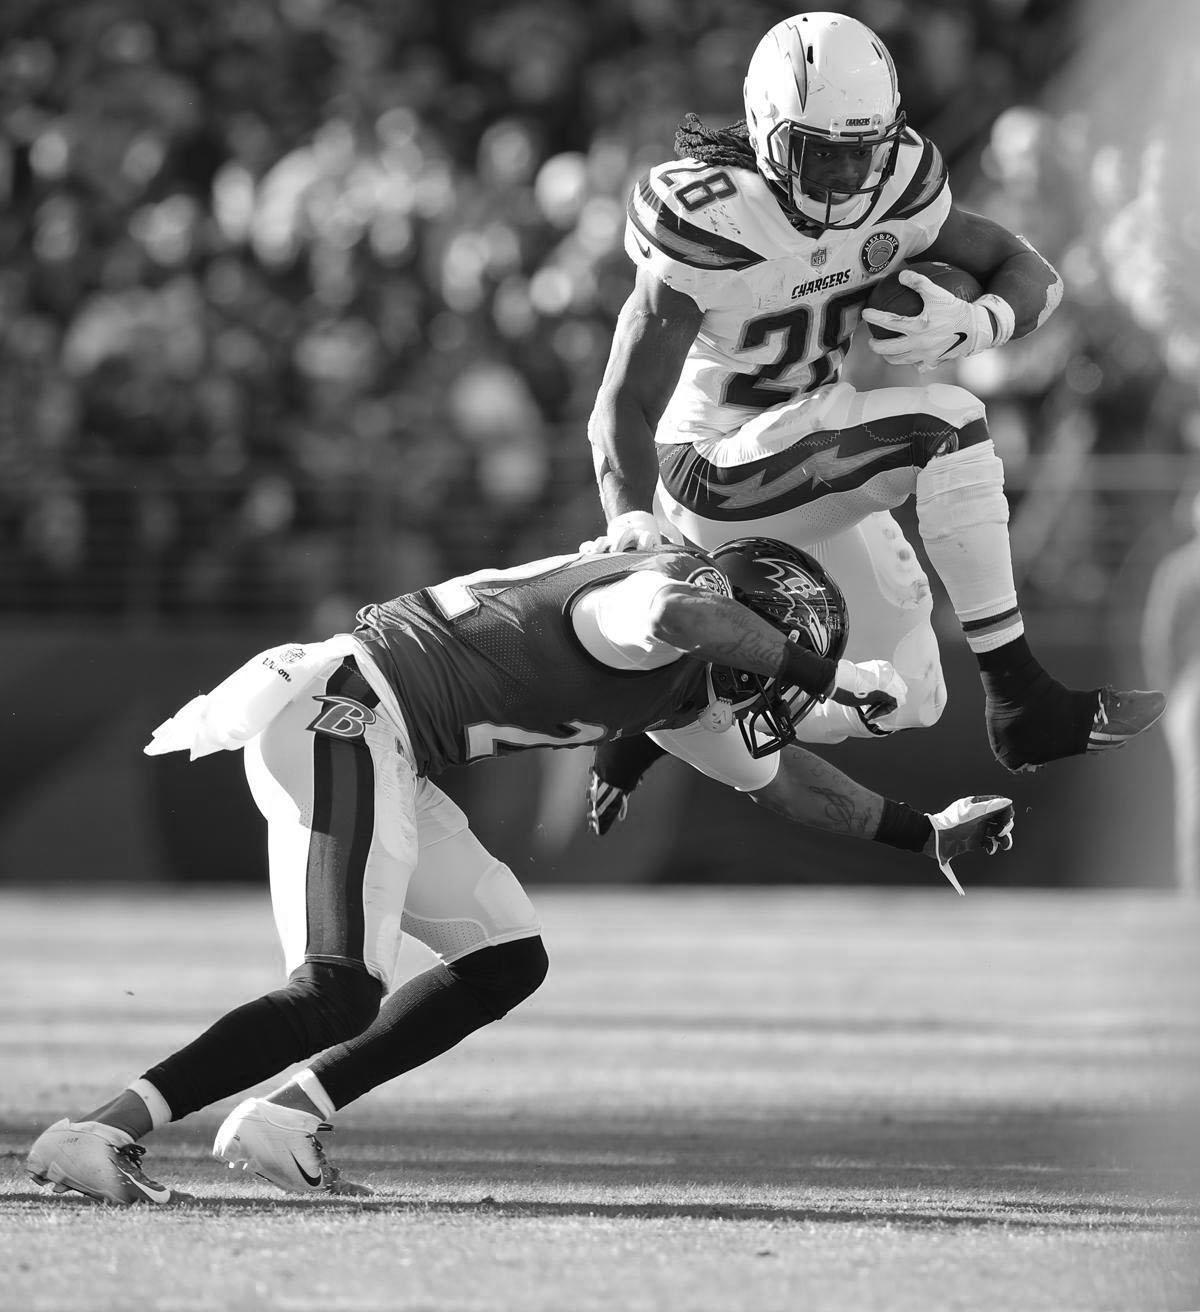 Los Angeles Chargers running back, Melvin Gordan, attempts to hurdle a defender in the NFC Divisional Round, on Jan. 6, 2019, which the Chargers won 23-17.